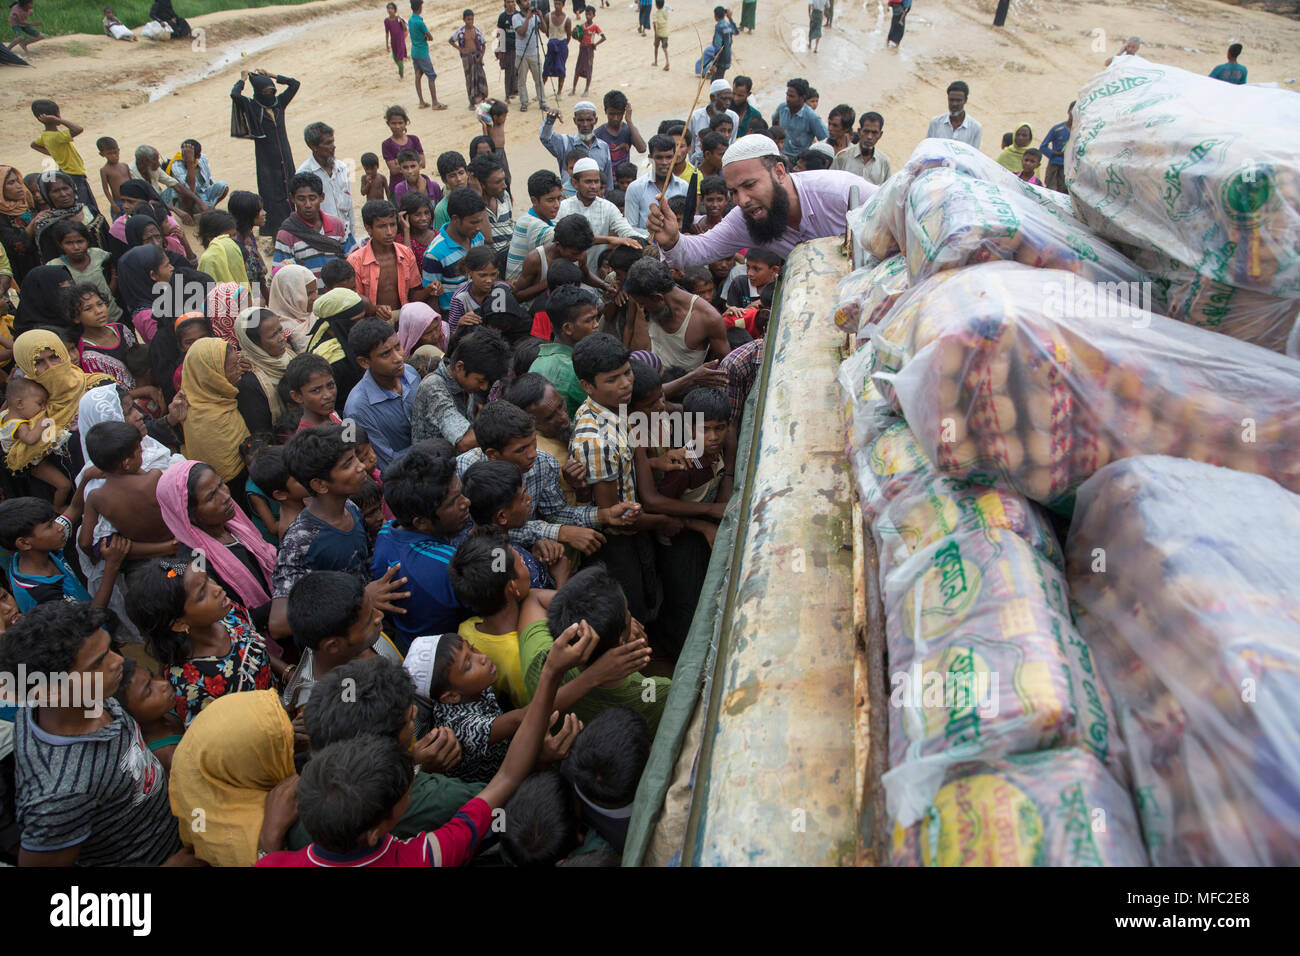 Rohingya refugees scramble for relief materials at kutupalong in Ukhia, Cox's Bazar, Bangladesh - Stock Image